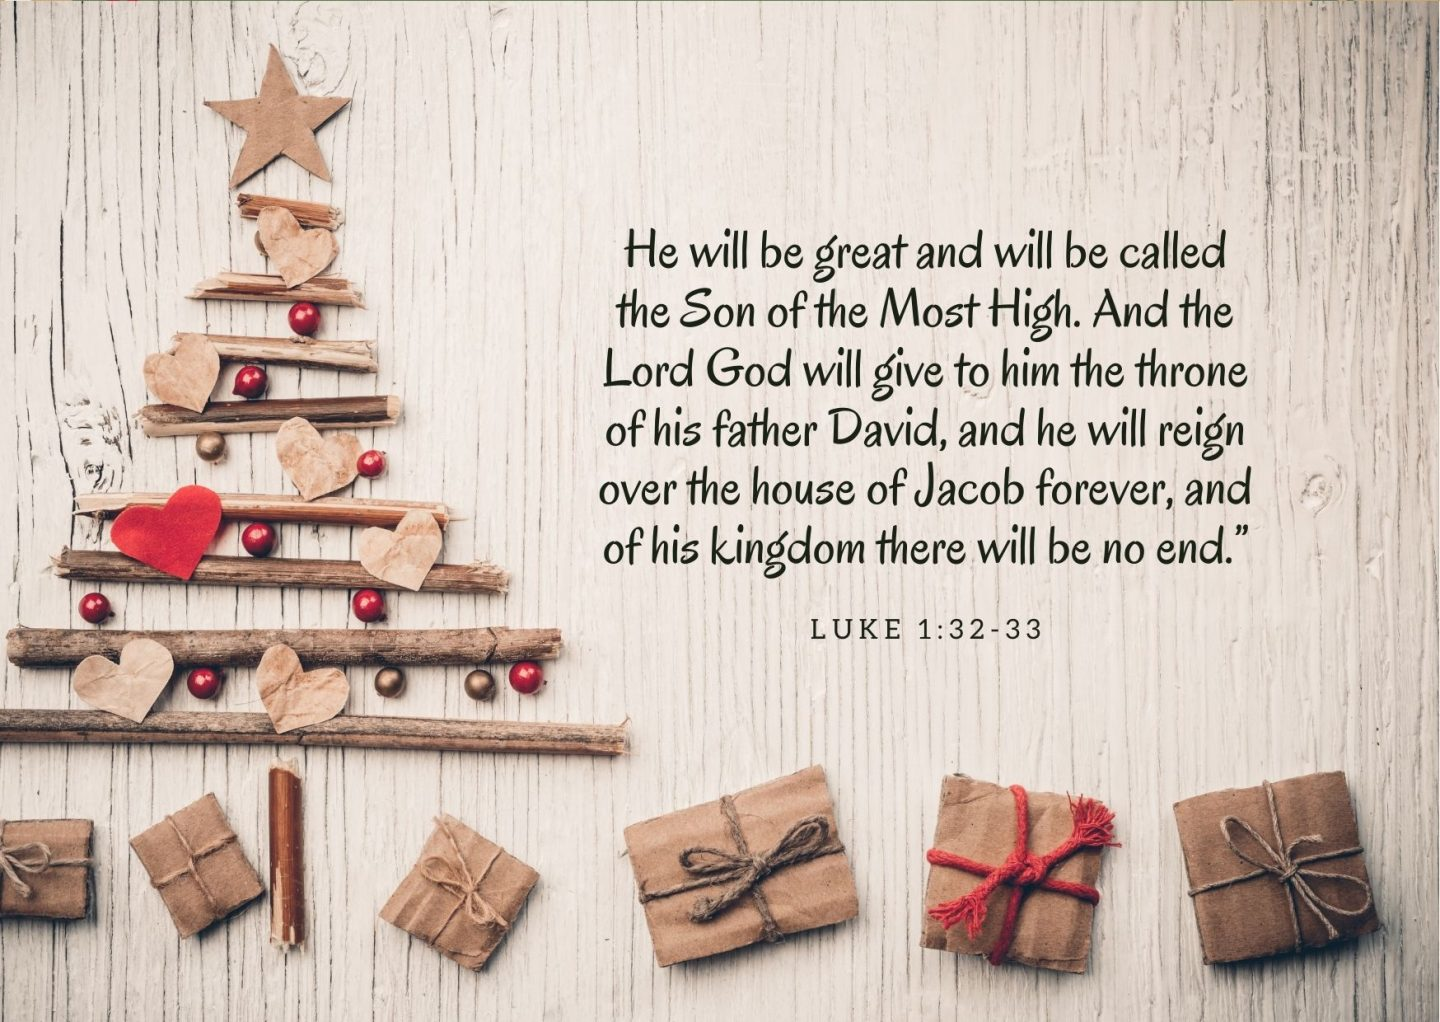 """He will be great and will be called the Son of the Most High. And the Lord God will give to him the throne of his father David,and he will reign over the house of Jacob forever, and of his kingdom there will be no end.""""He will be great and will be called the Son of the Most High. And the Lord God will give to him the throne of his father David,and he will reign over the house of Jacob forever, and of his kingdom there will be no end."""" He will be great and will be called the Son of the Most High. And the Lord God will give to him the throne of his father David,and he will reign over the house of Jacob forever, and of his kingdom there will be no end."""" Luke 1:32-33"""